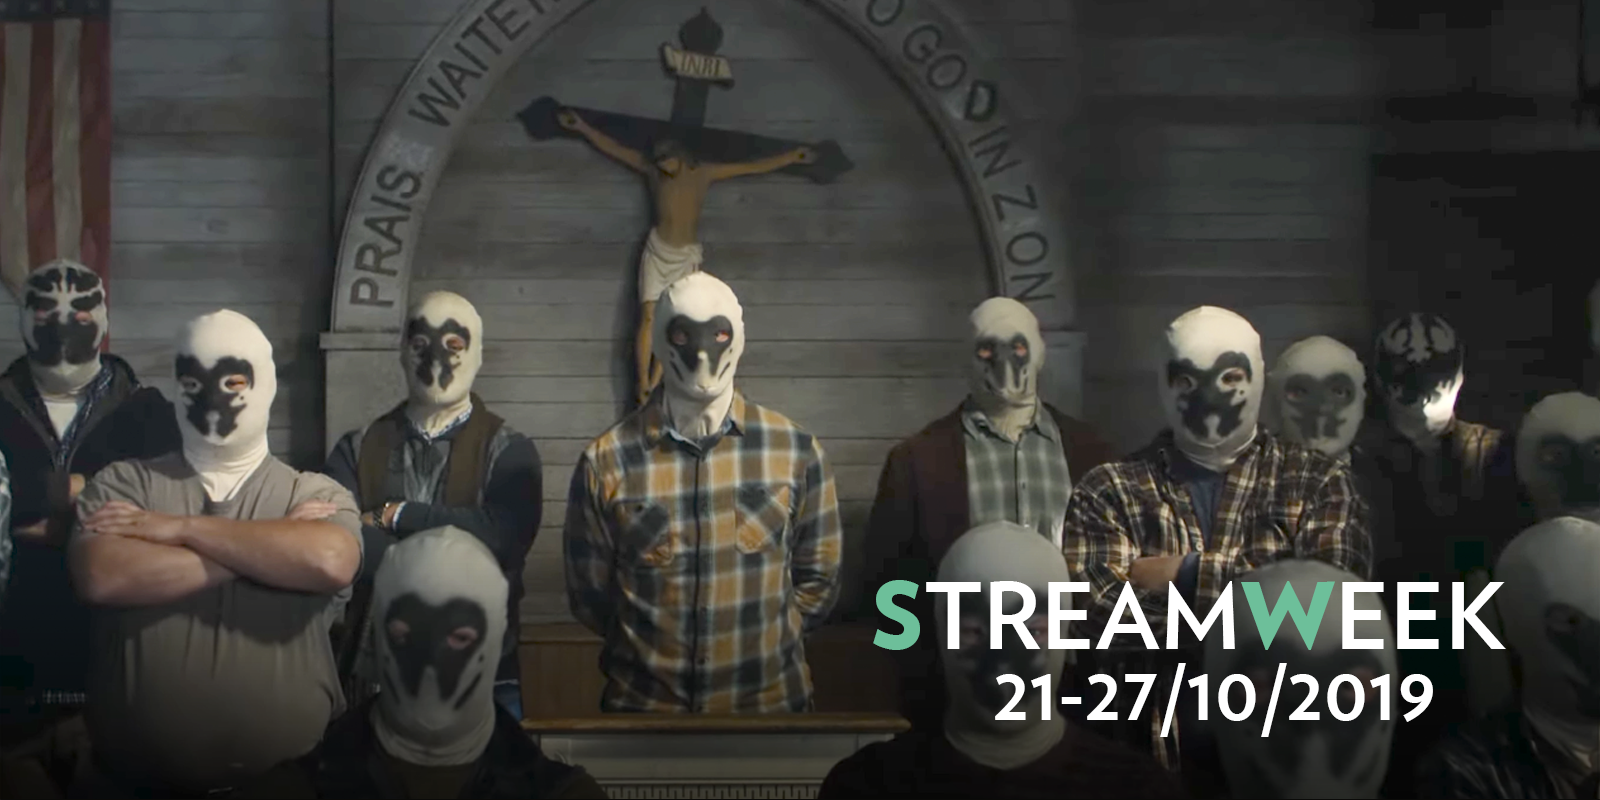 StreamWeek: who watches the Watchmen?